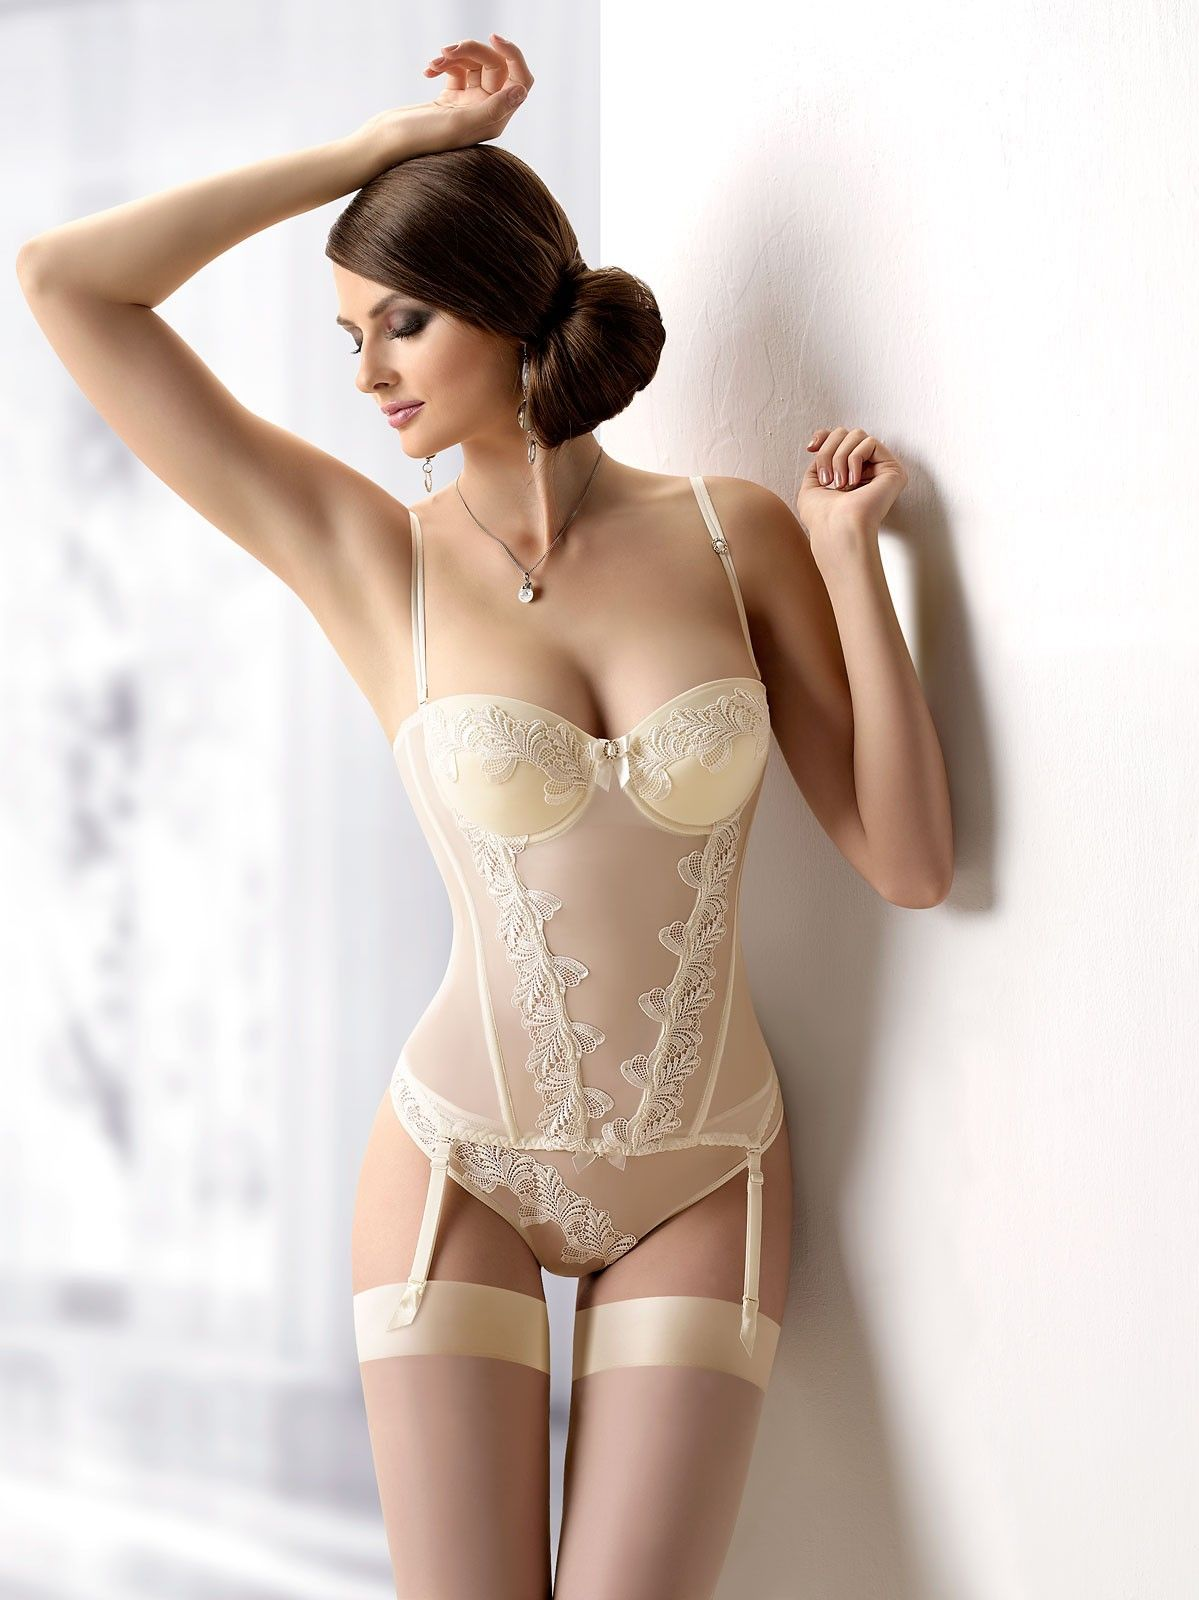 Amazing wedding corset wedding bridal lingerie happily ever then ennia lingerie online who specialise in sexy lingerie womens underwear and bridal lingerie is your first choice for gracya miette luxury corset in junglespirit Gallery